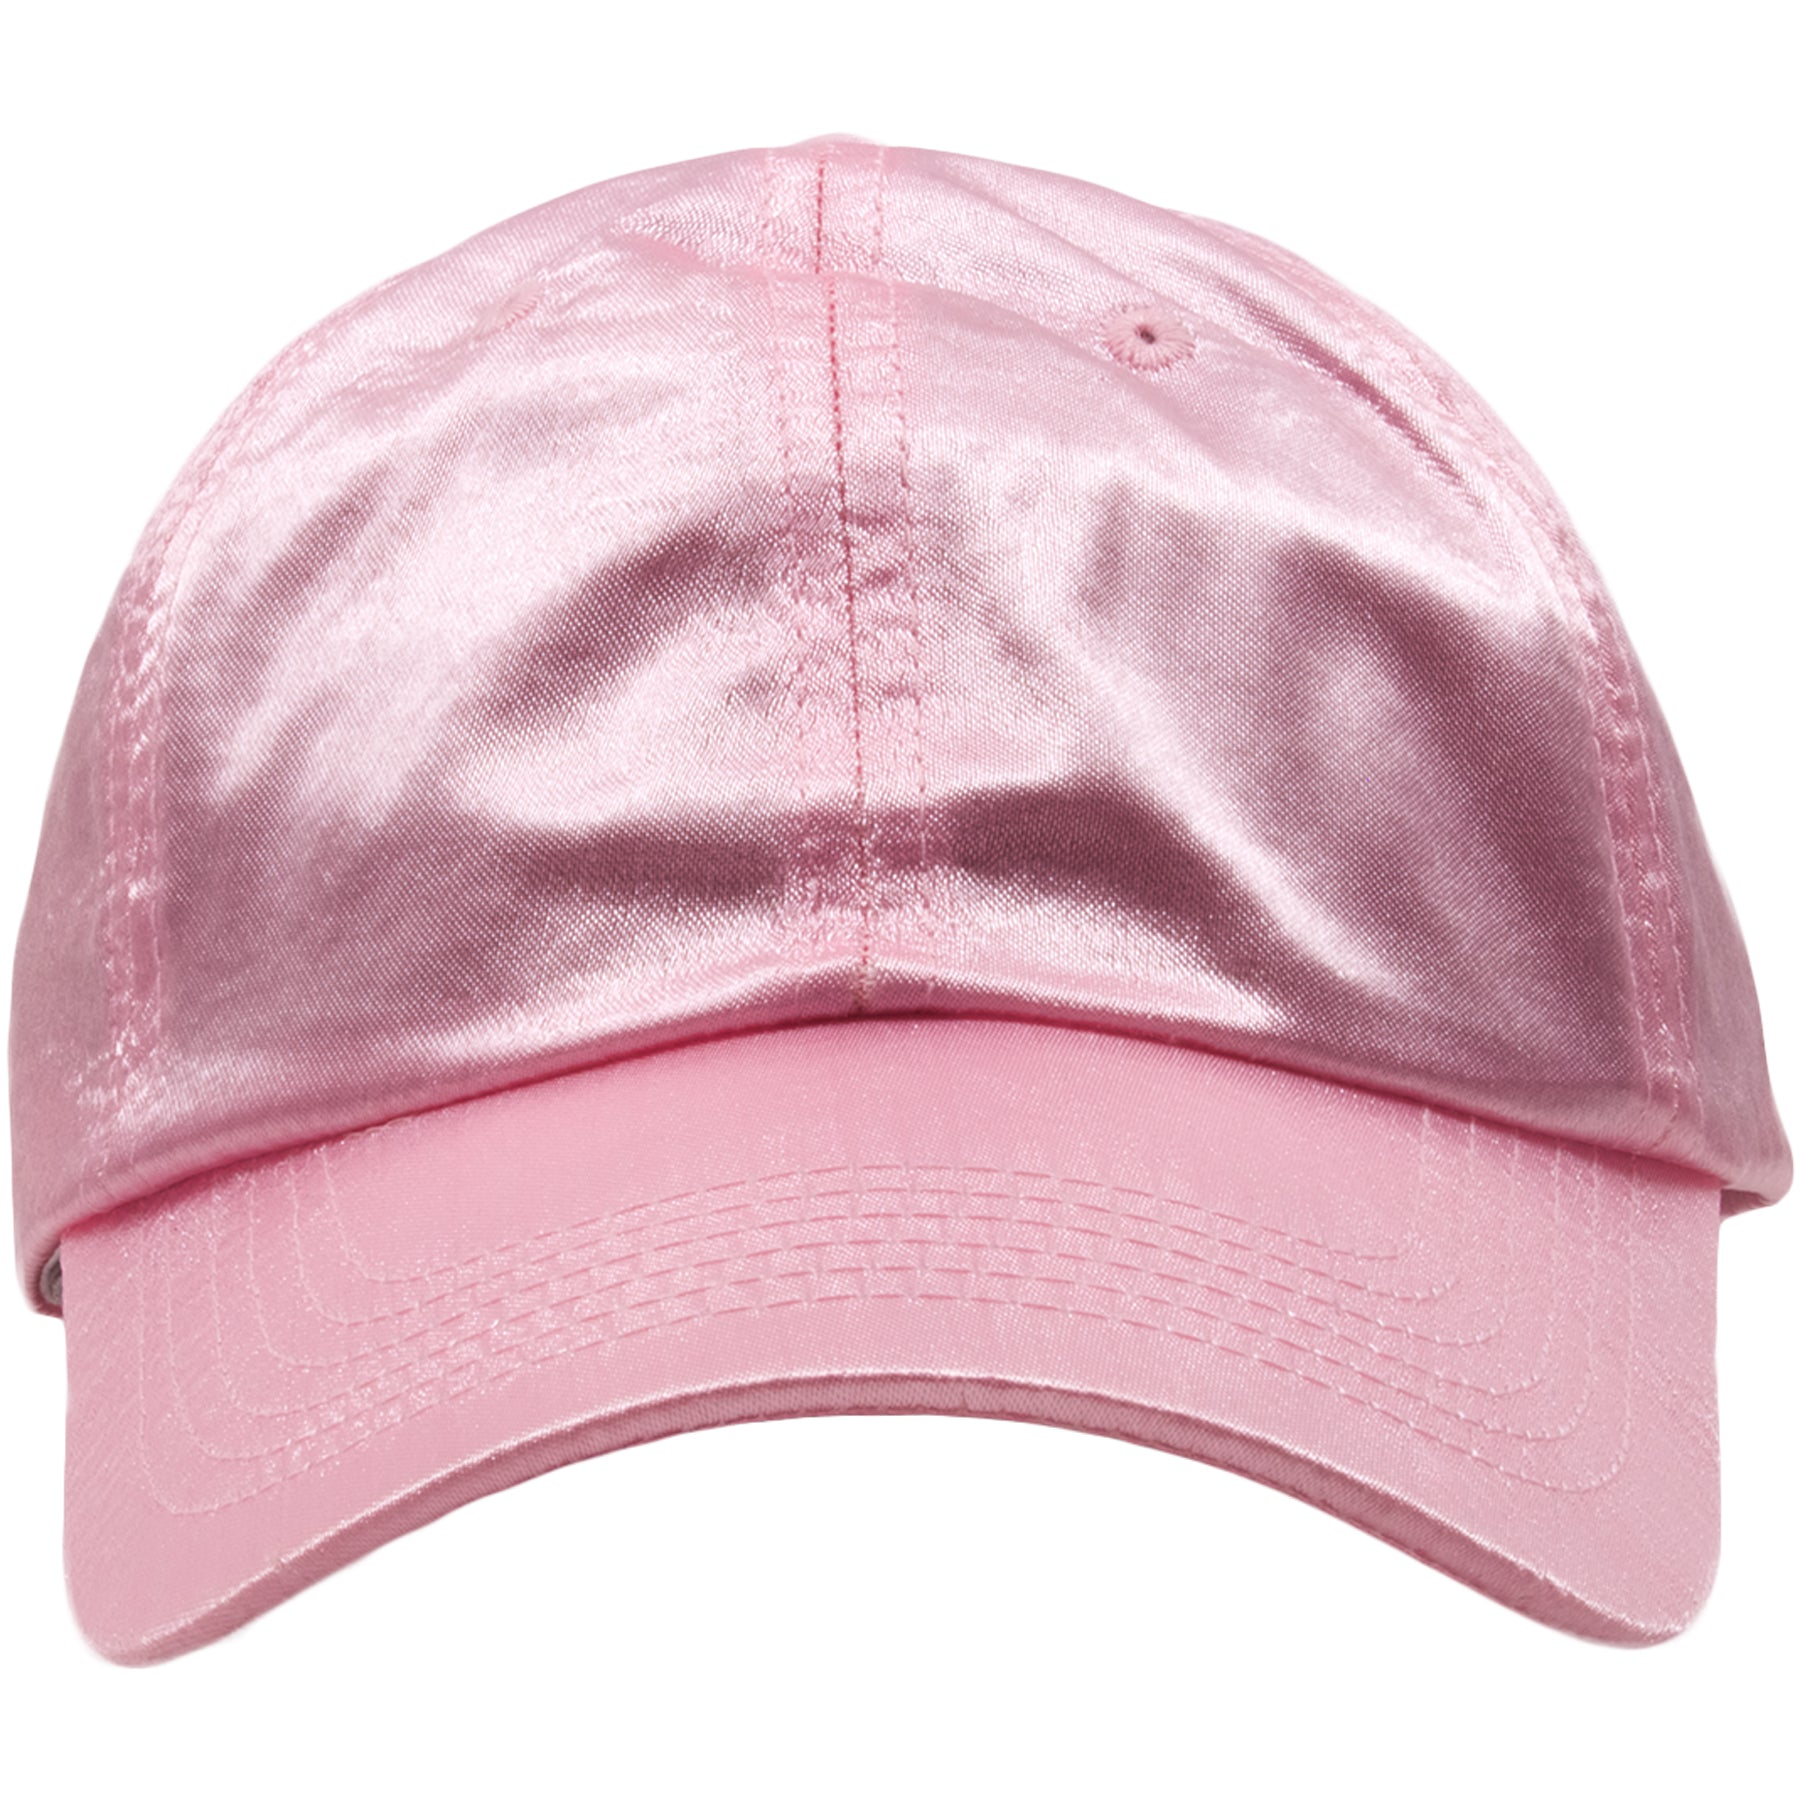 b79f5e0f83c The blank pink satin baseball cap is solid pink and made out of 100% satin